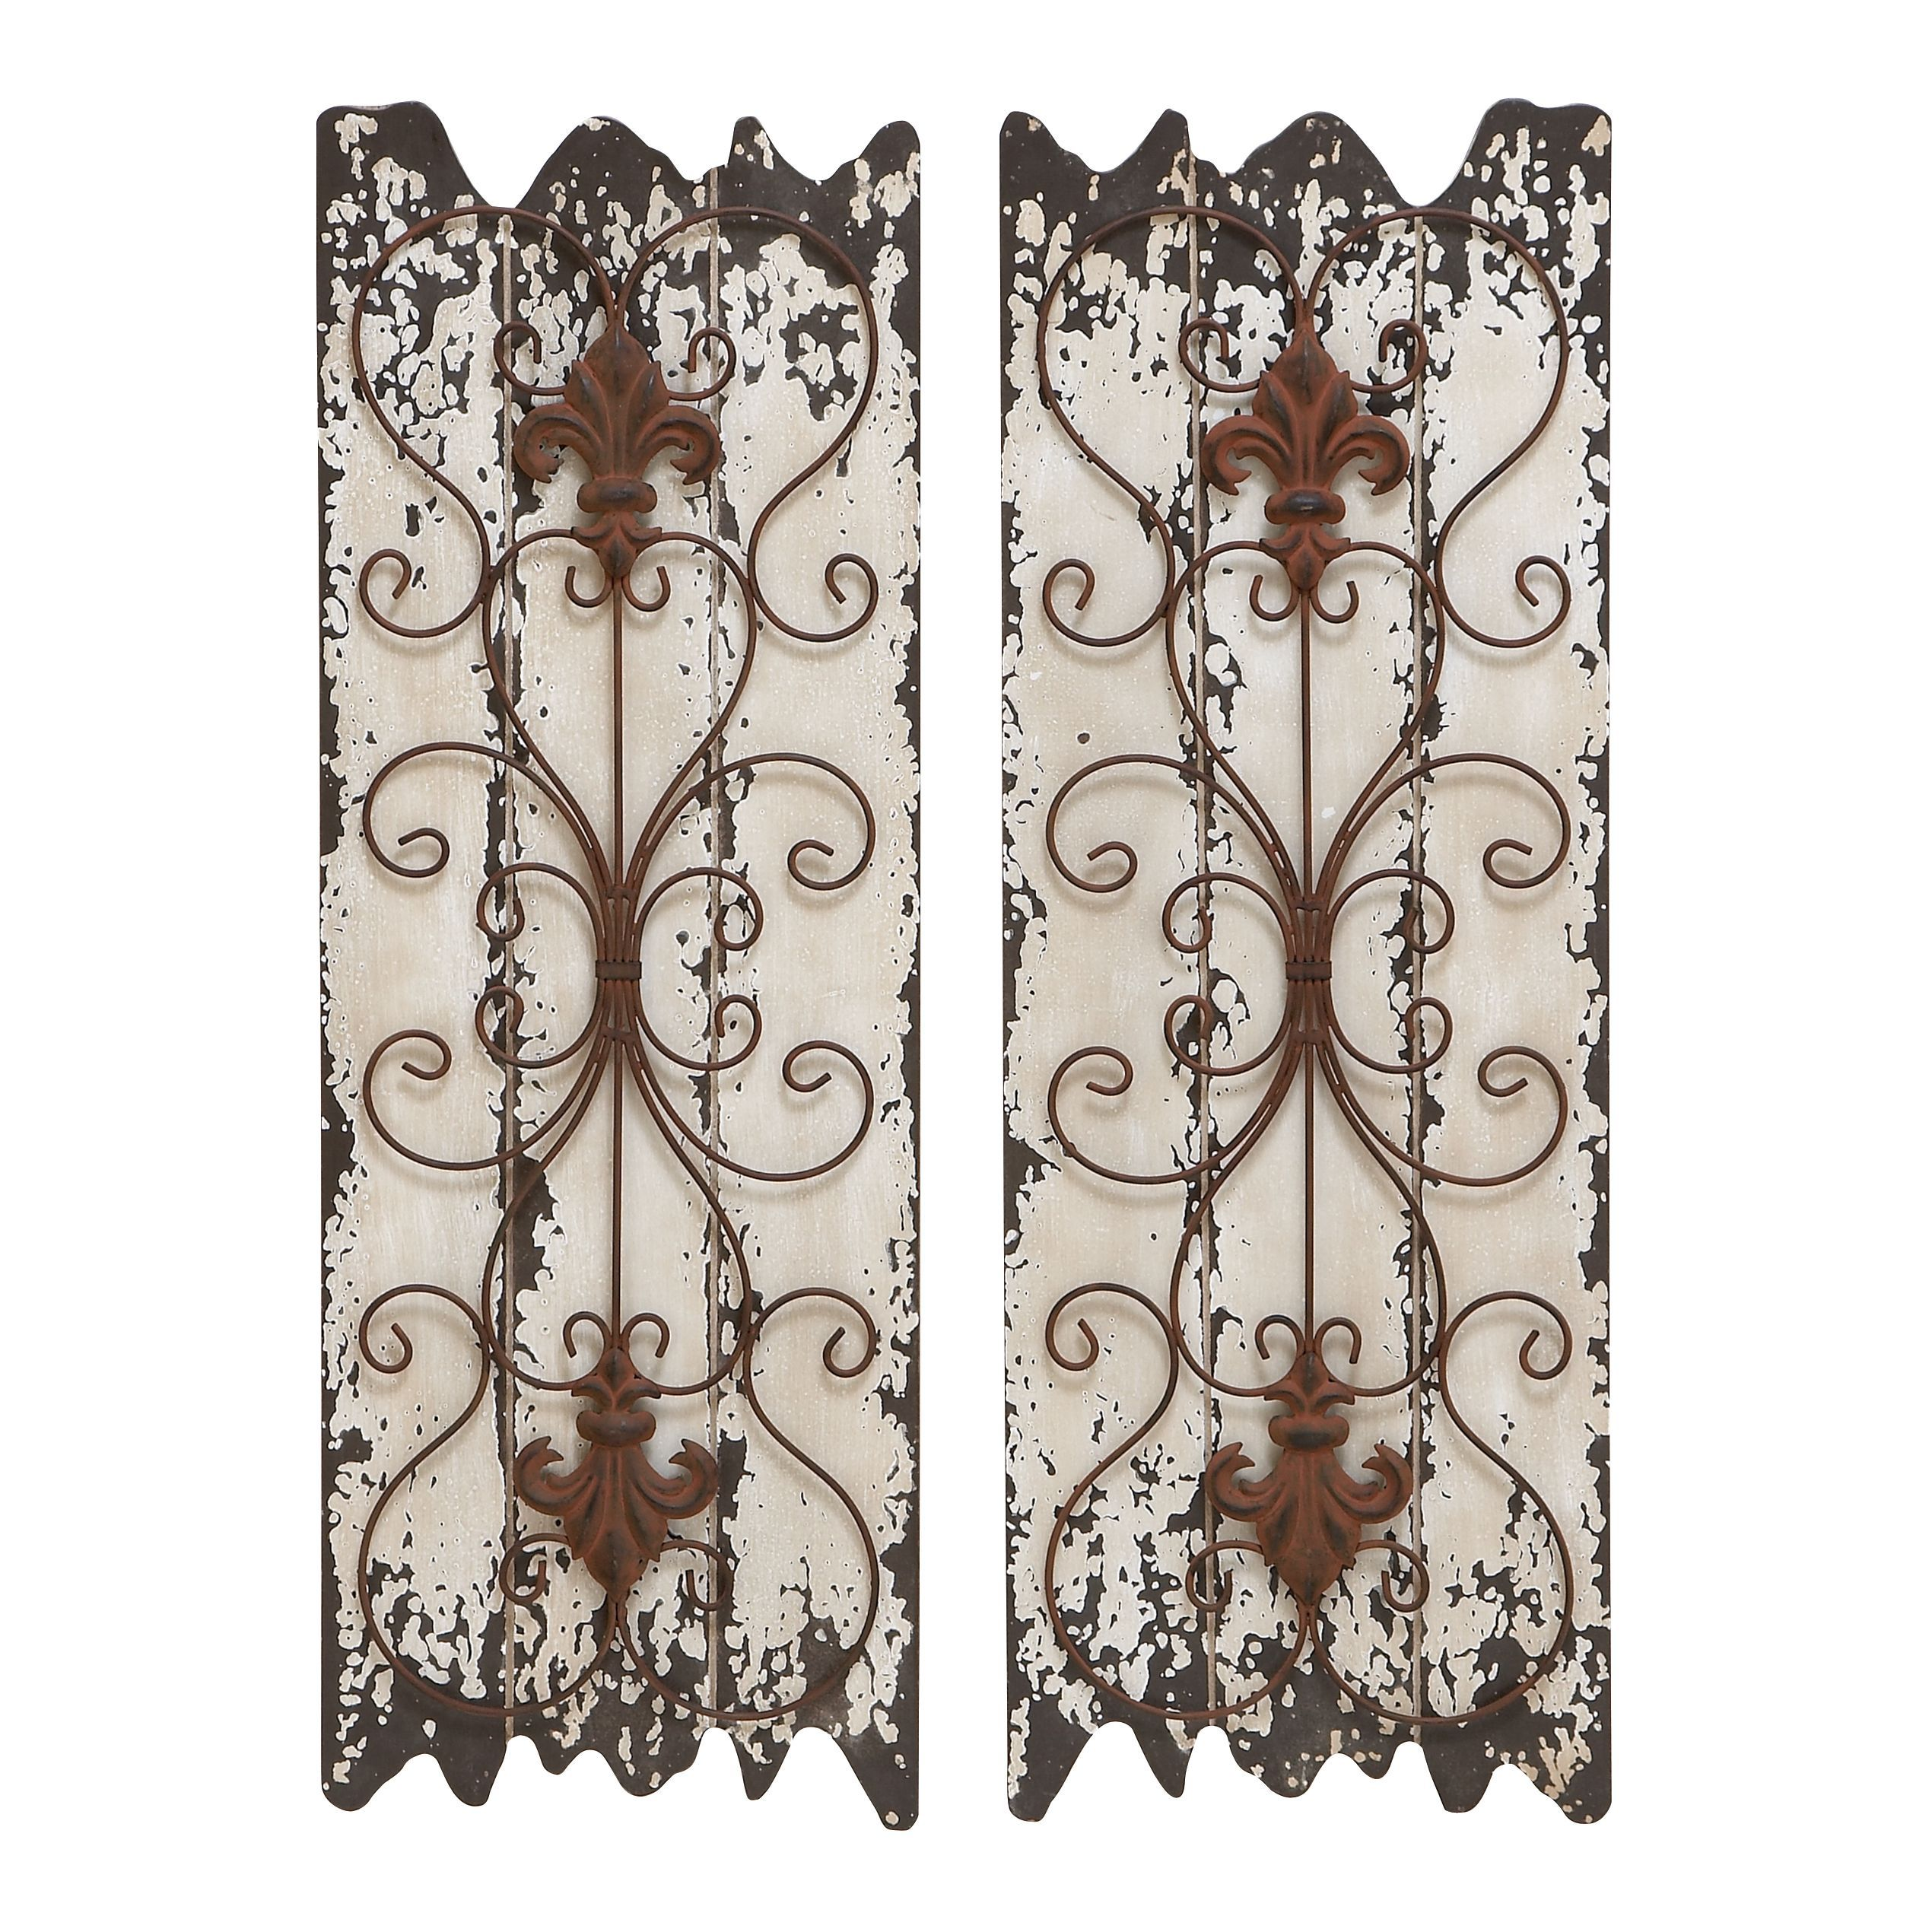 This elegant wall decor is finished with distressed wood and metal